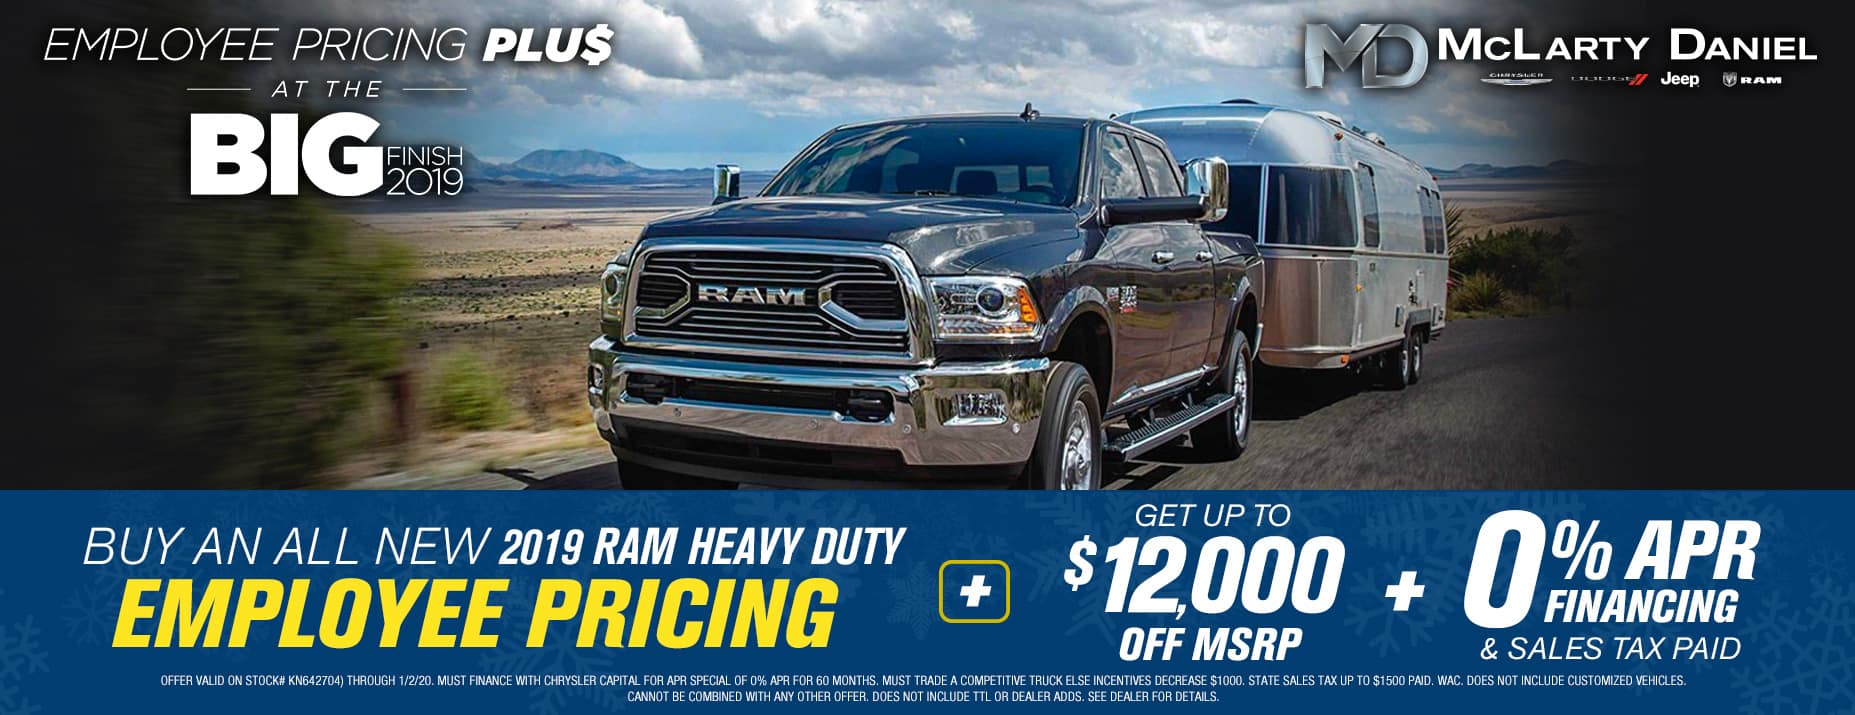 GET UP TO $12,000 OFF NEW RAM HEAVY DUTIES PLUS 0% FINANCING PLUS SALES TAX PAID!